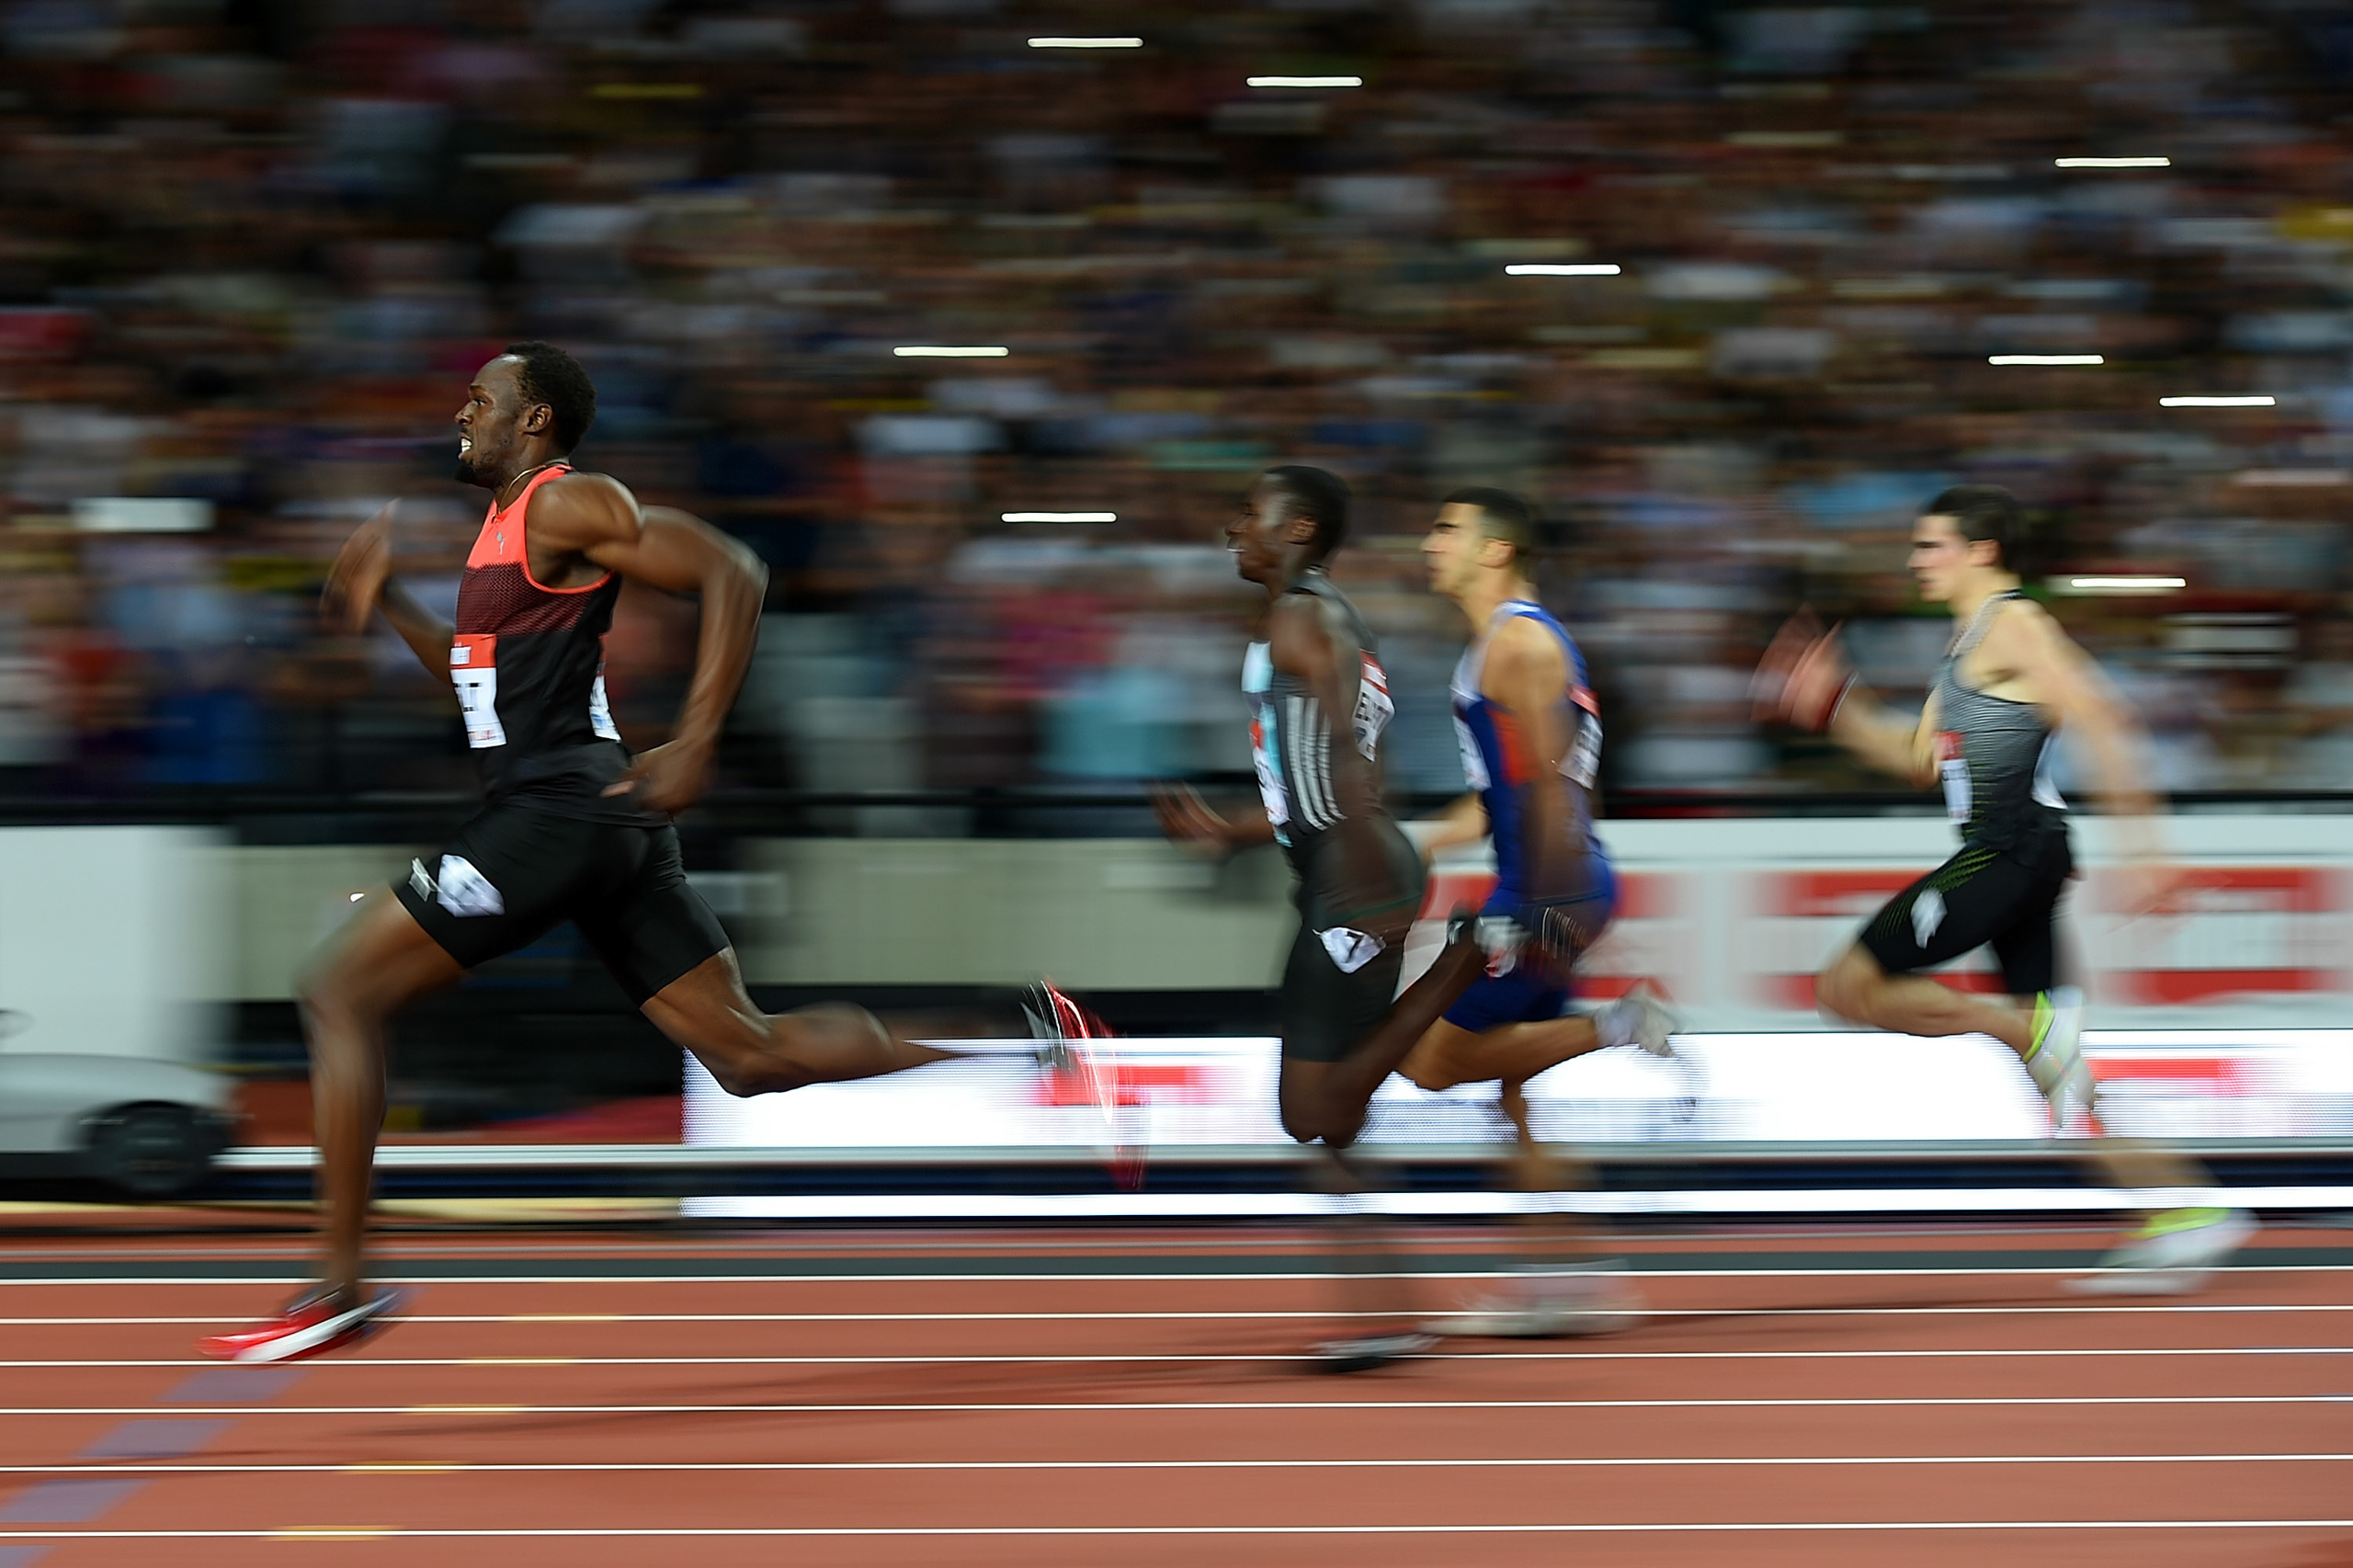 """<strong>Usain Bolt, Track and Field, Jamaica</strong>When Usain Bolt pulled out of the Jamaican trials in July because of a hamstring injury, shudders were felt far beyond the sprinting--obsessed island nation. Since exploding onto the world scene at the 2008 Beijing Olympics, Bolt, who will turn 30 on Aug. 21, has been the most dominant and marketable force in his sport. Could the world's fastest human really miss out on his last Olympics? His rivals, however, knew better. """"Come on, man,"""" said U.S. sprinter Justin Gatlin, Bolt's longtime adversary. """"He's Usain.""""                                   Bolt has made a habit of entering major races with nagging injuries and underwhelming tune-ups, then winning anyway. In Rio, Bolt will shoot for an unprecedented career haul: nine straight Olympic races—the 100 m, 200 m and 4 x 100-m relay in Beijing, London and Rio—nine golds. Enjoy this final run. We'll never see it again. —S.G."""